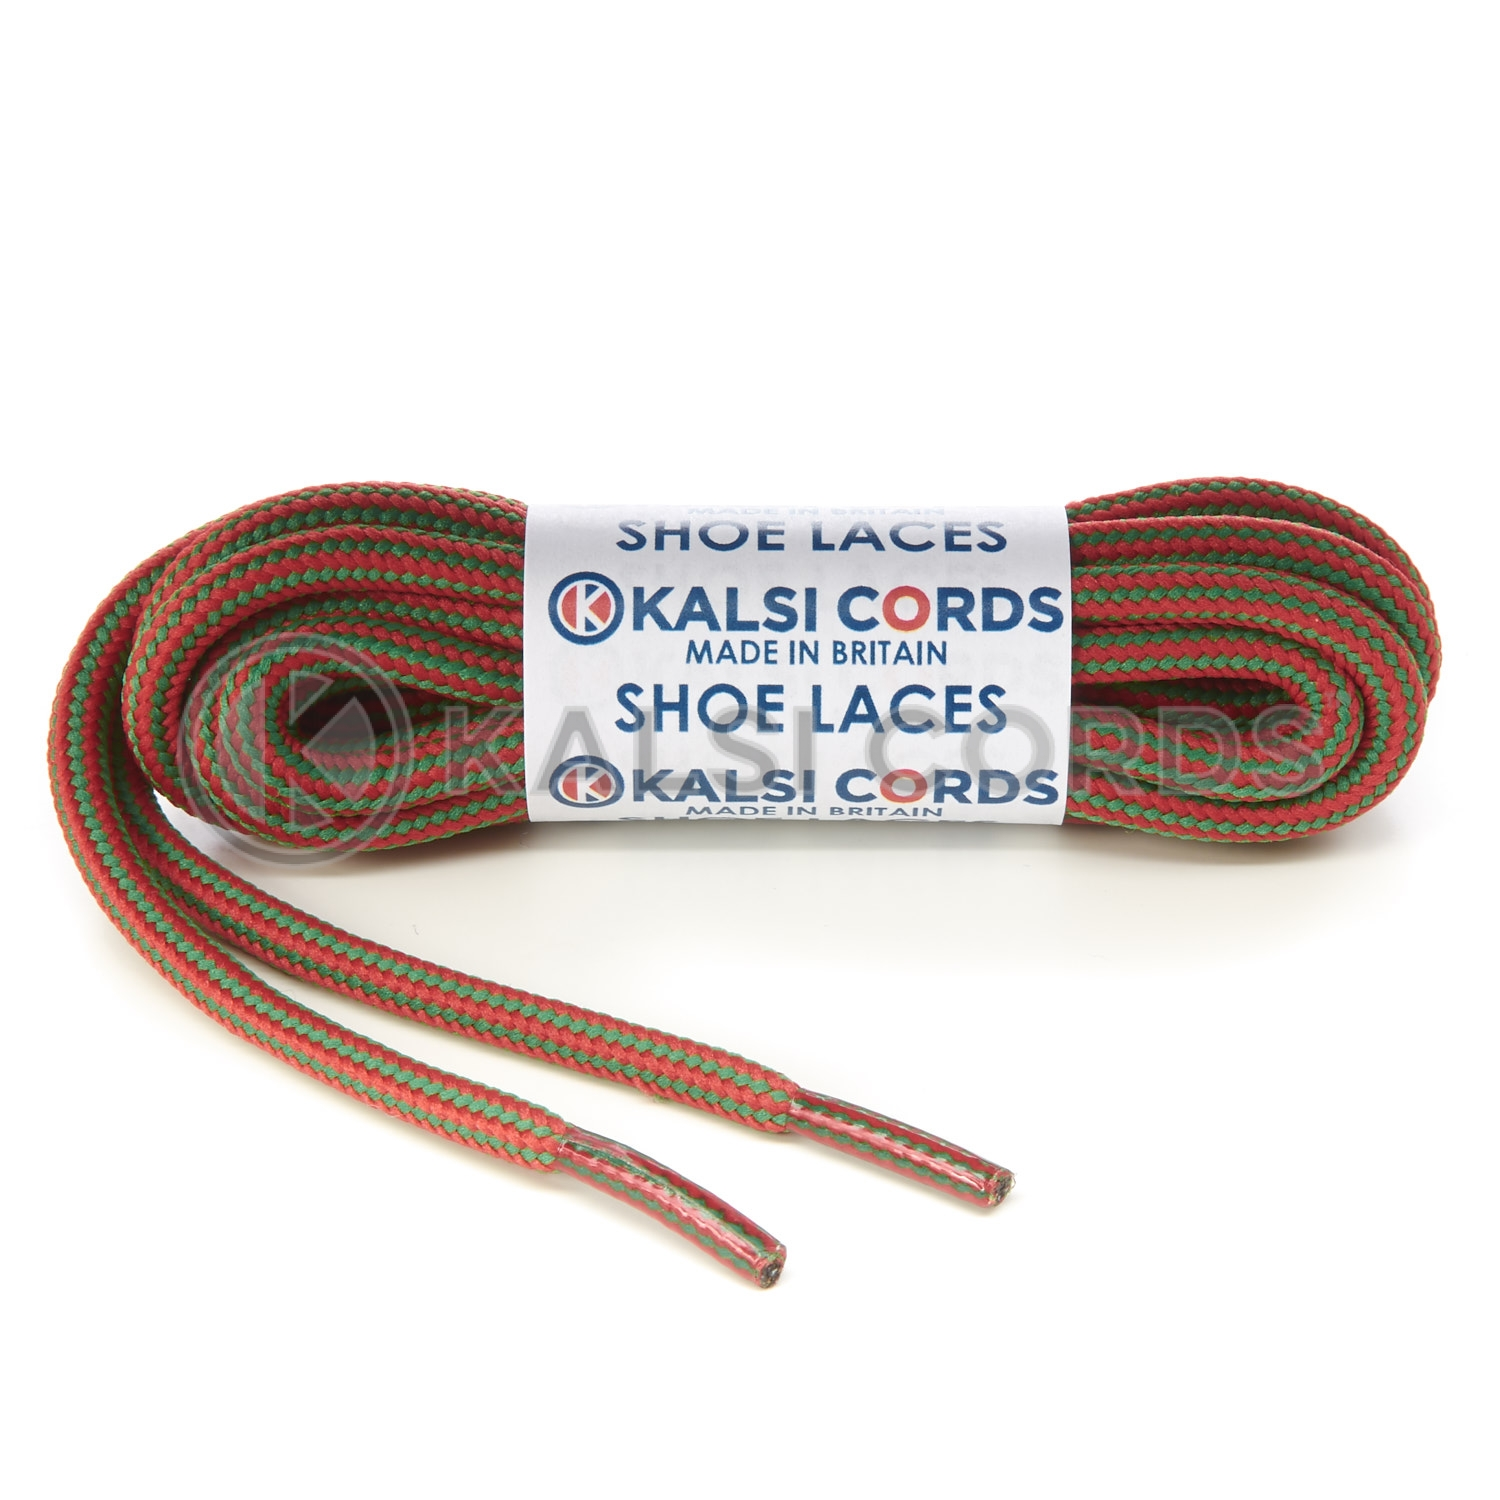 T621 5mm Round Cord Stripe Shoe Laces Emerald Green Rose Madder Red Kids Trainers Adults Hiking Walking Boots Kalsi Cords